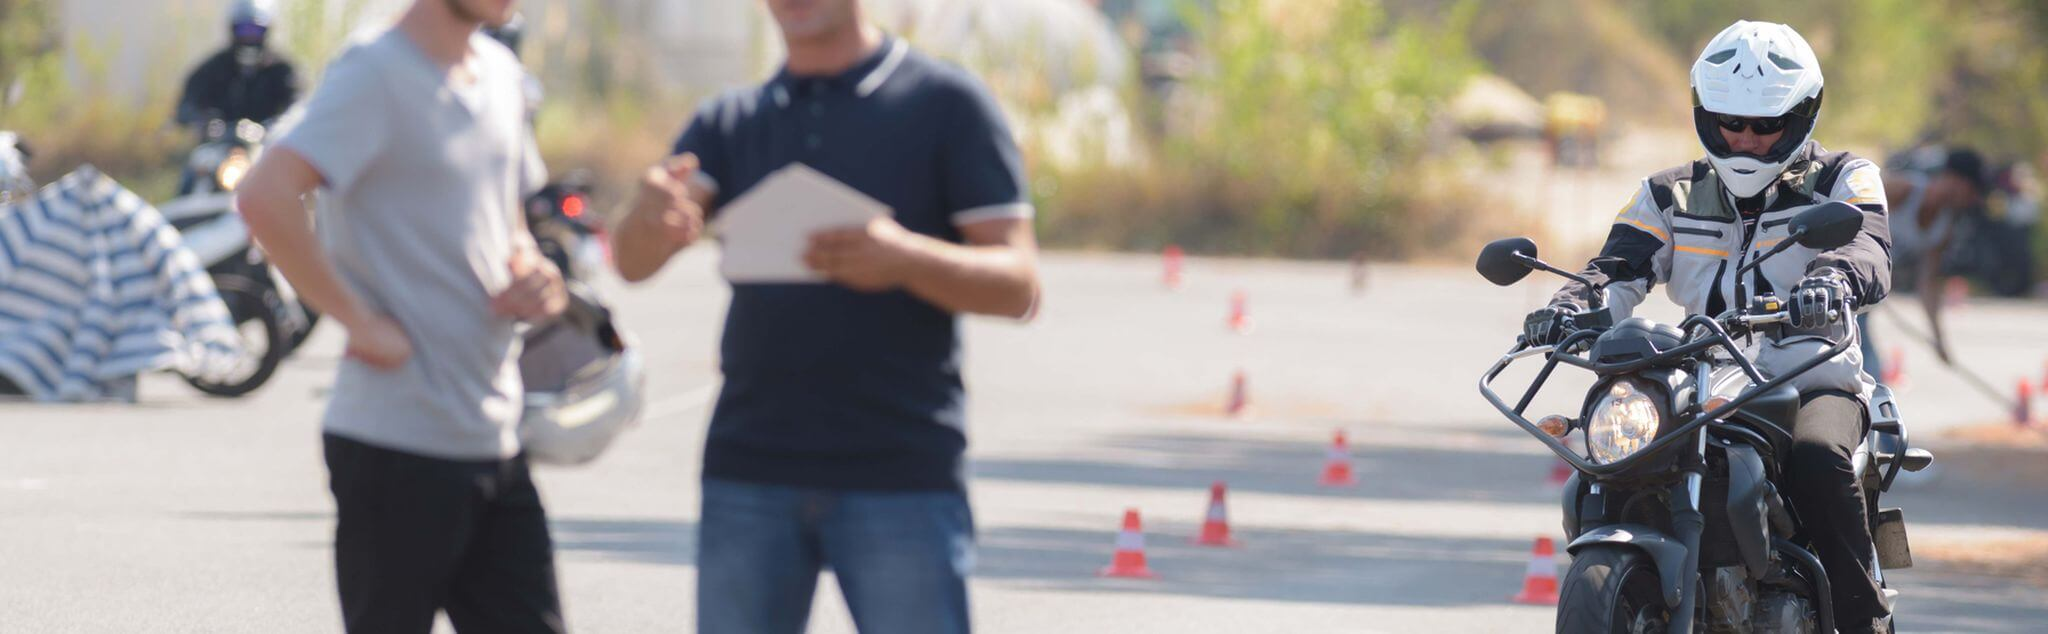 Motorcycle Driving Courses in Málaga